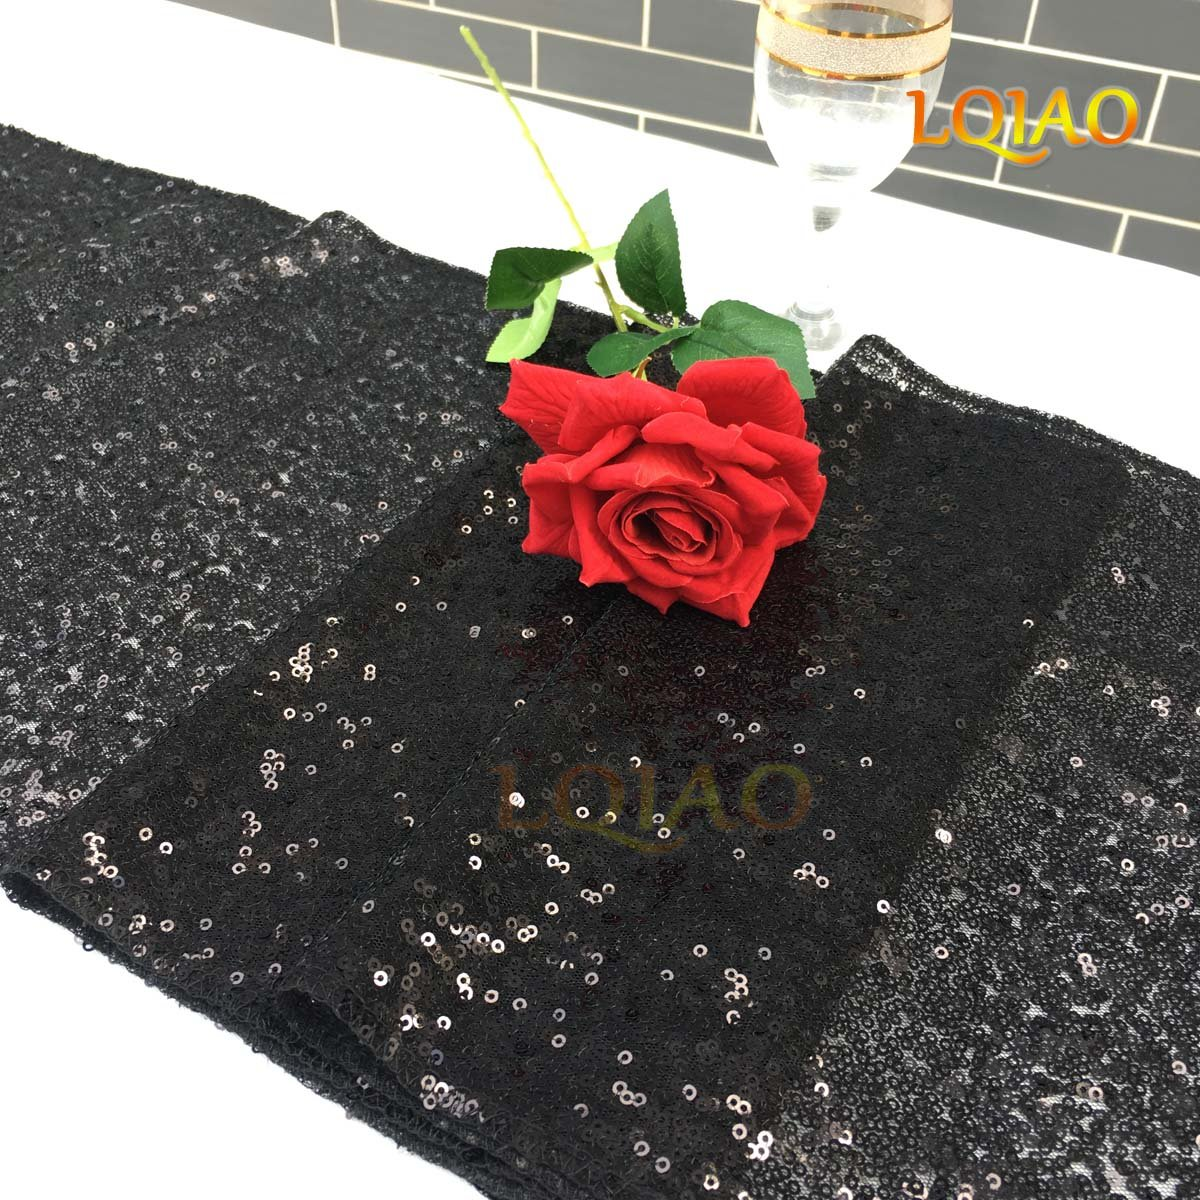 LQIAO Christmas Table Runner Sequin 12x108-in, Black, Shiny Fabric Birthday/Wedding/Party Decoration(wholesale Possible), Pack of 20 PCS